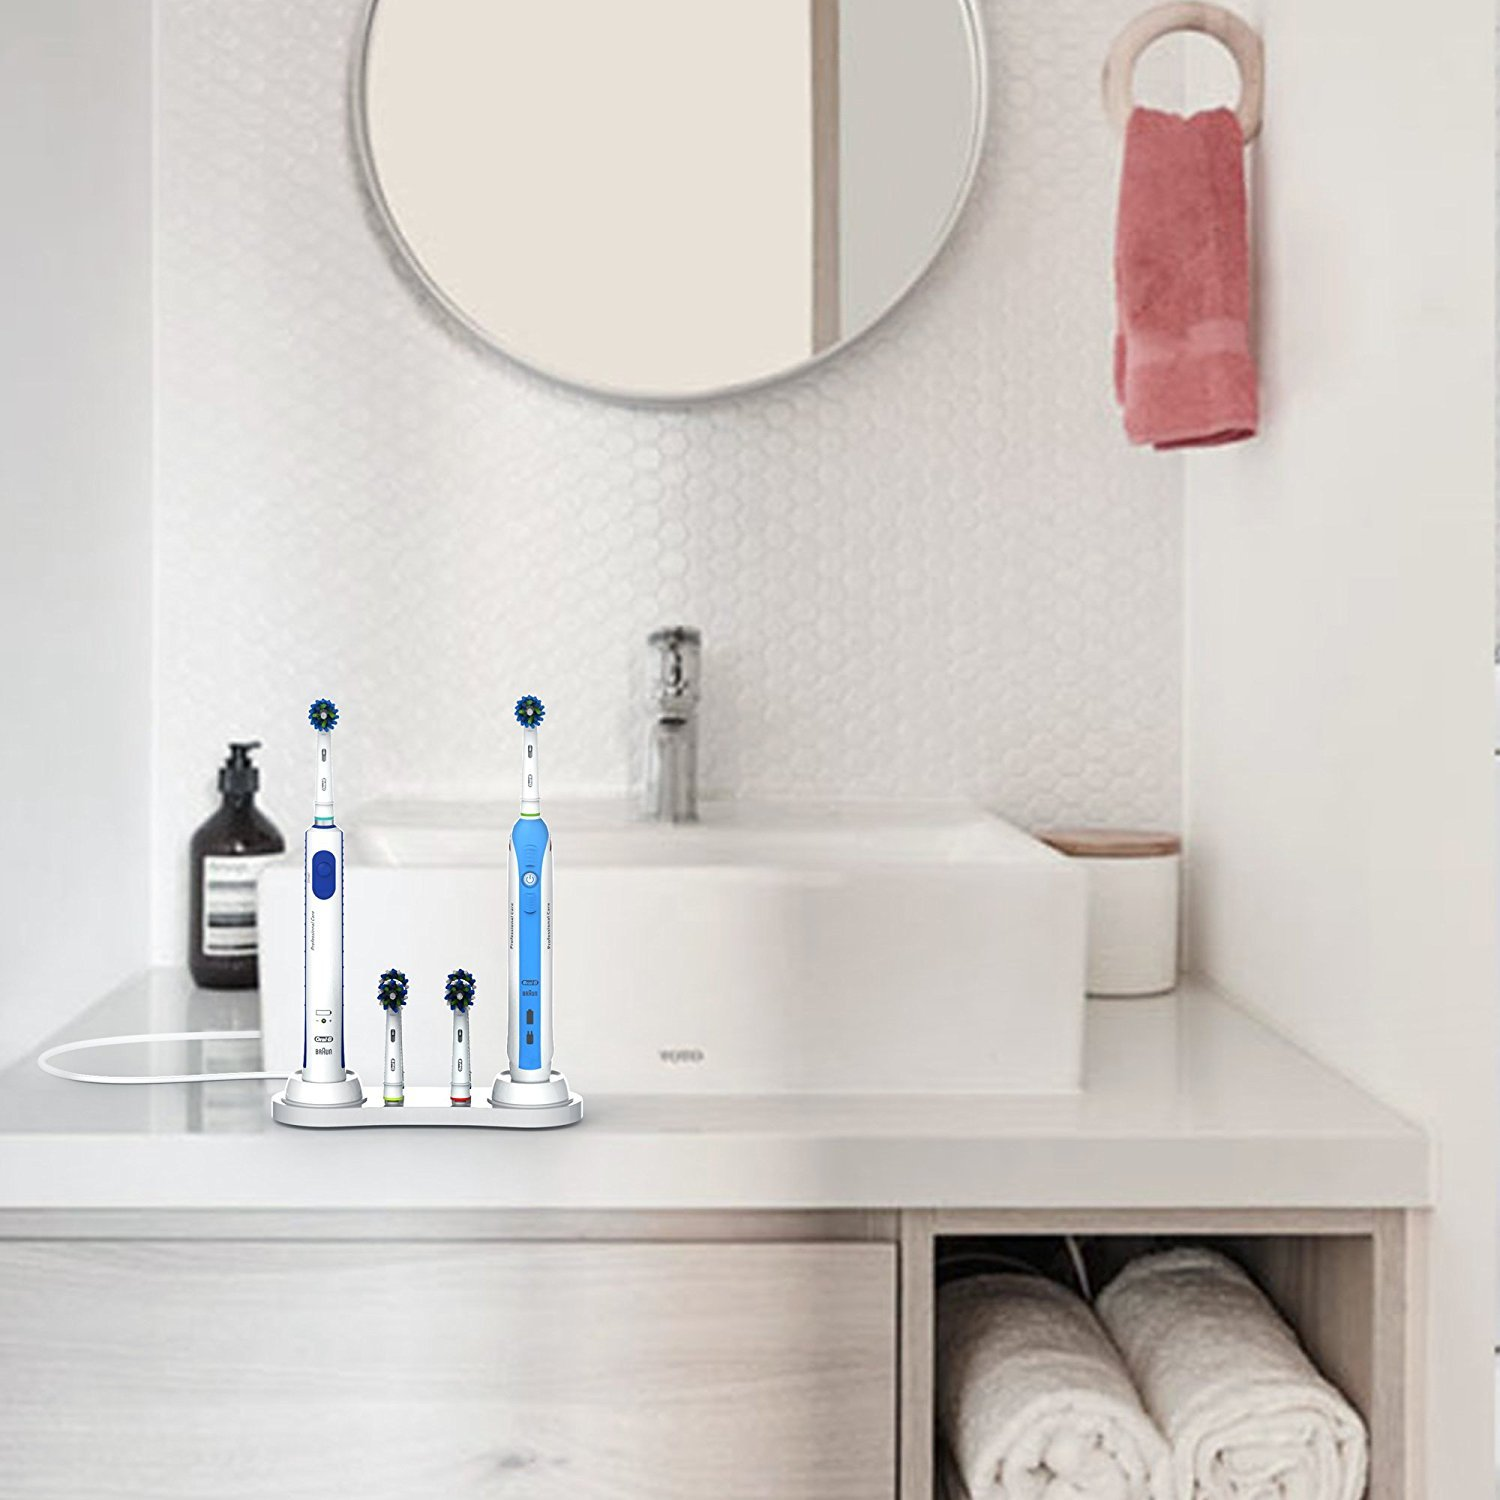 Itian Electric Toothbrushes Stand For Oral-B 4 Toothbrush Head Holders With Electric Toothbrush Stand And Electric Toothbrush Charger Holder